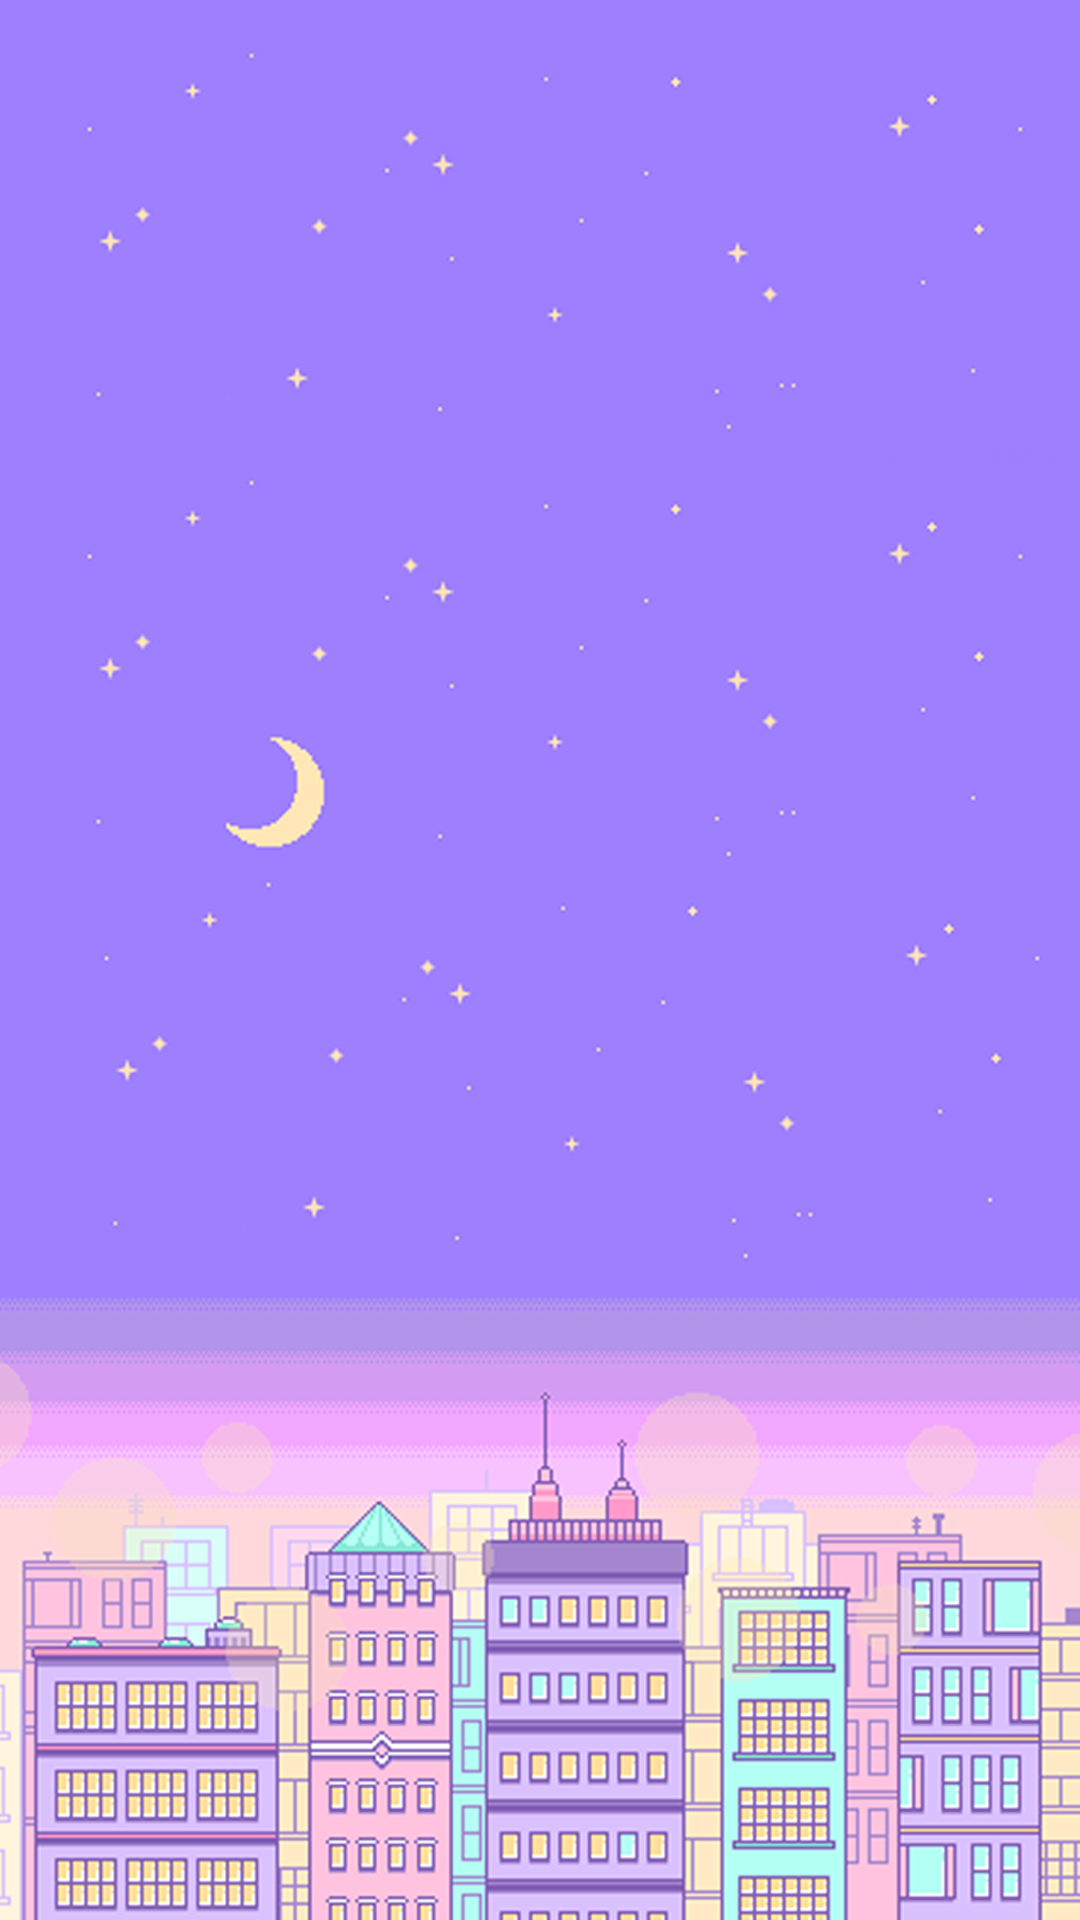 Pin By リン ゴック On Phone Wallpapers Aesthetic Pastel Wallpaper